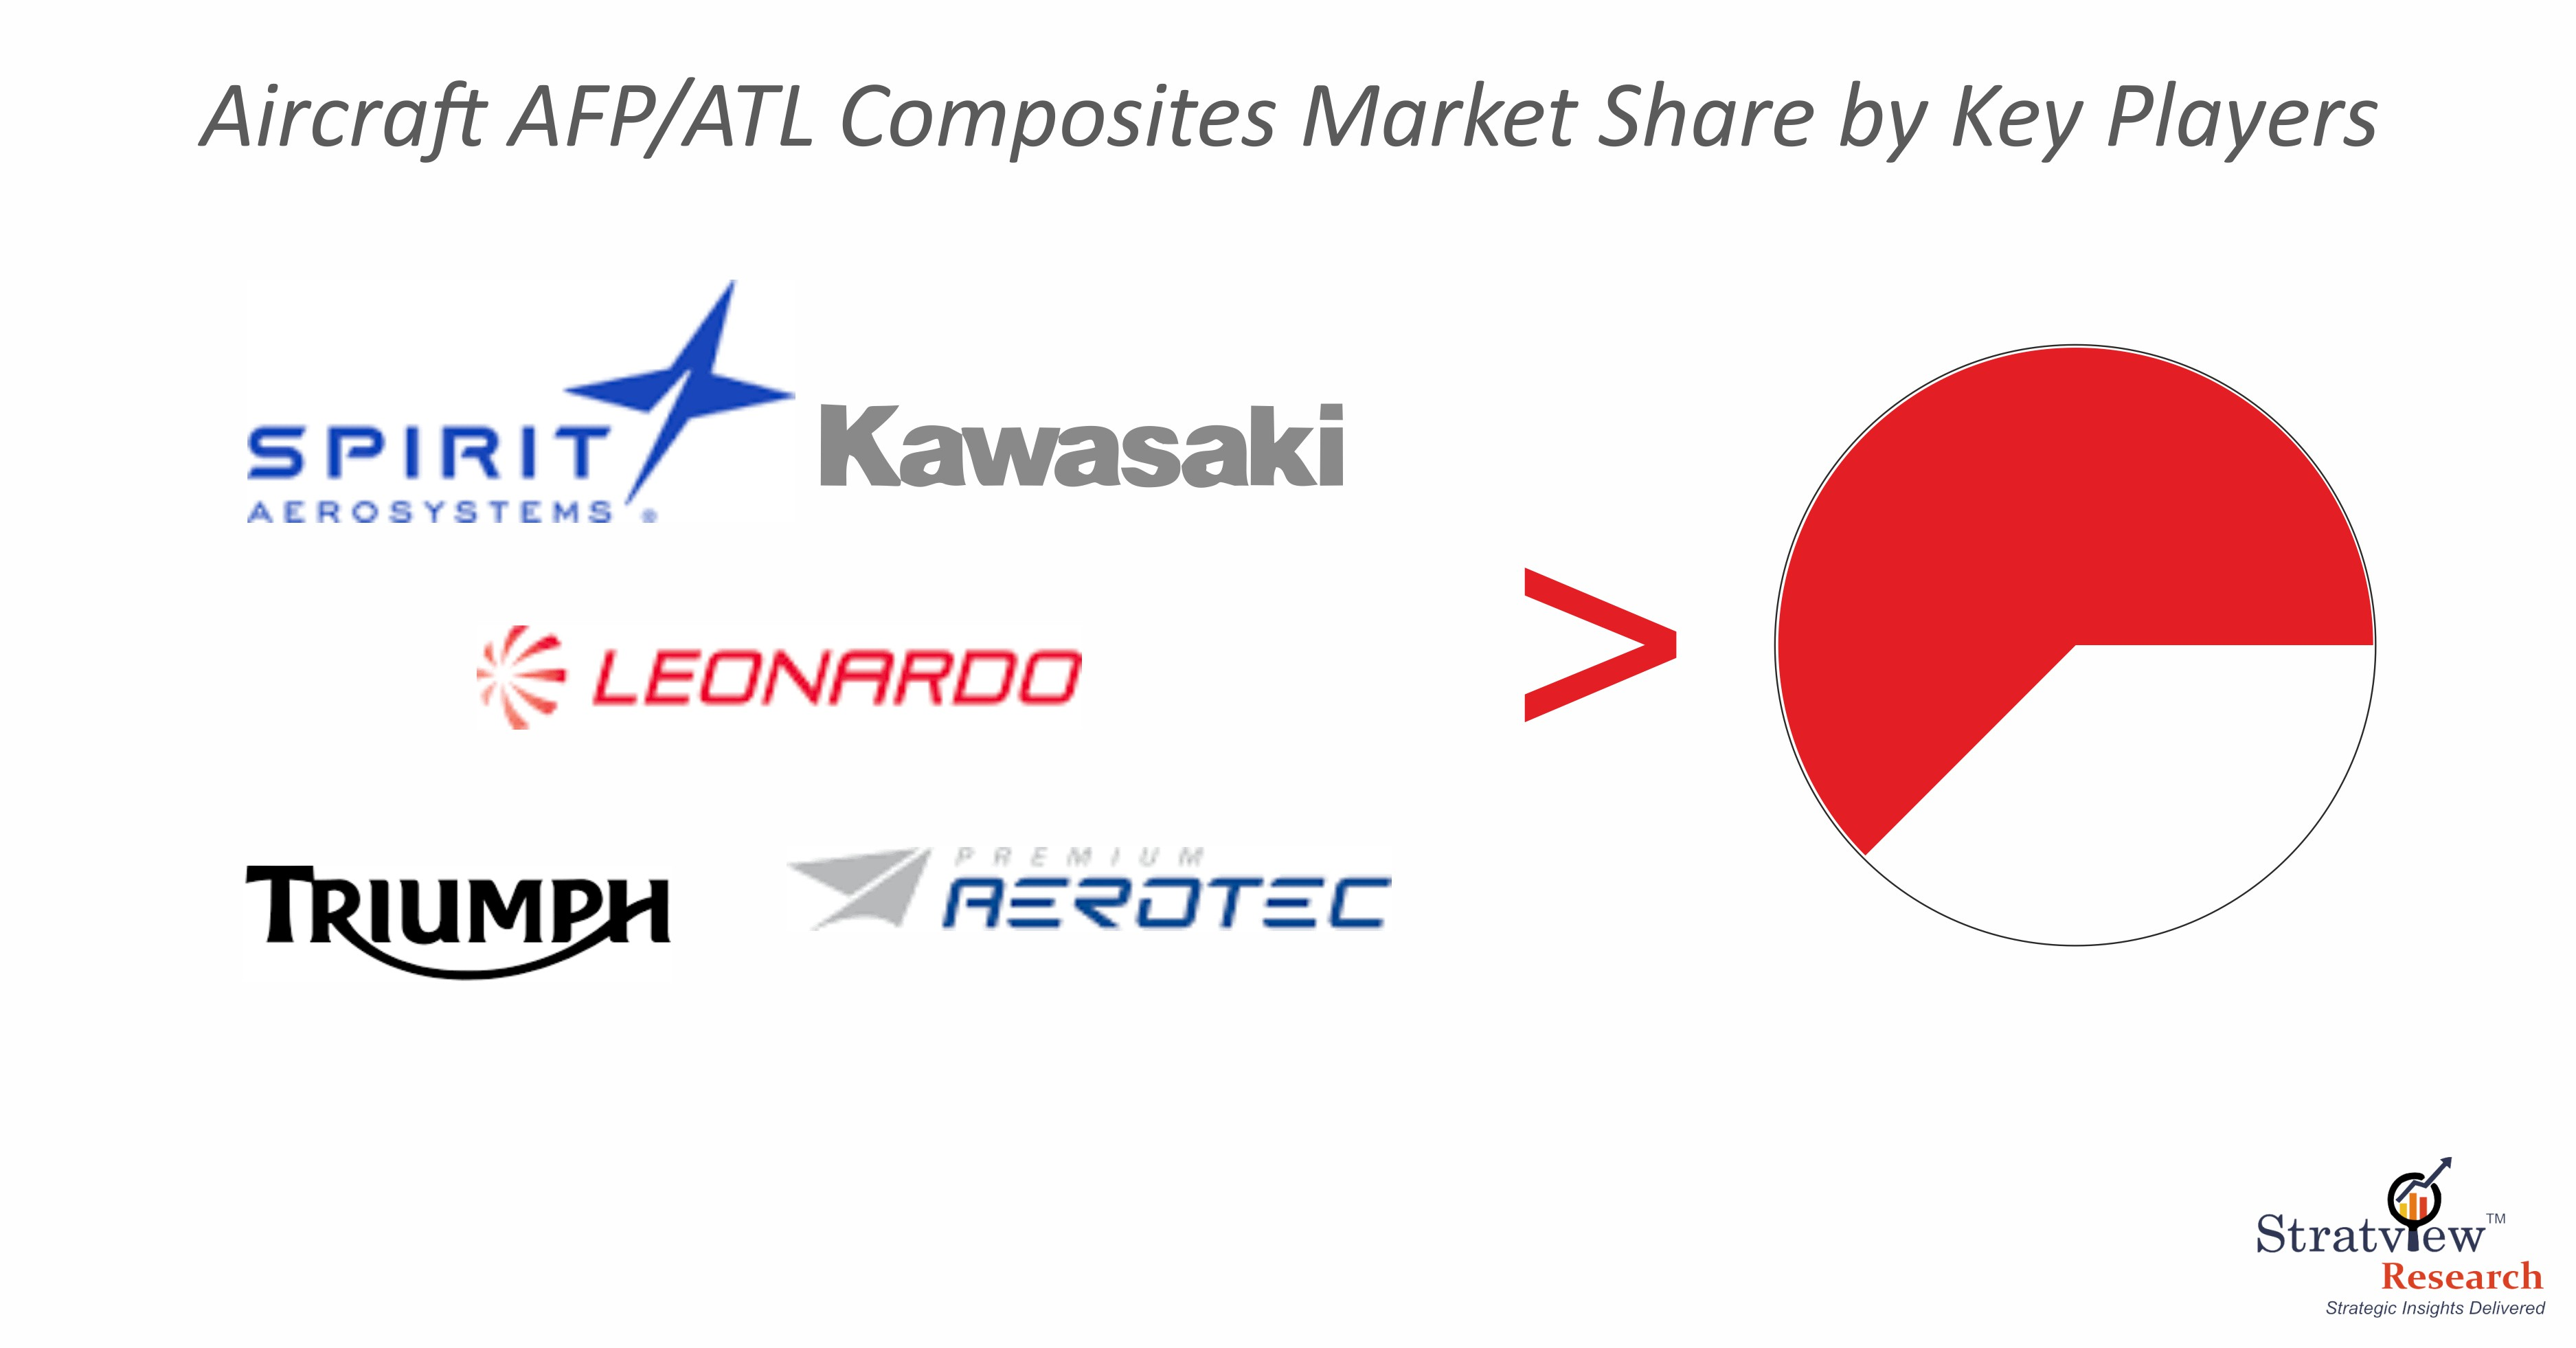 Aircraft AFP/ATL Composites Market Competition